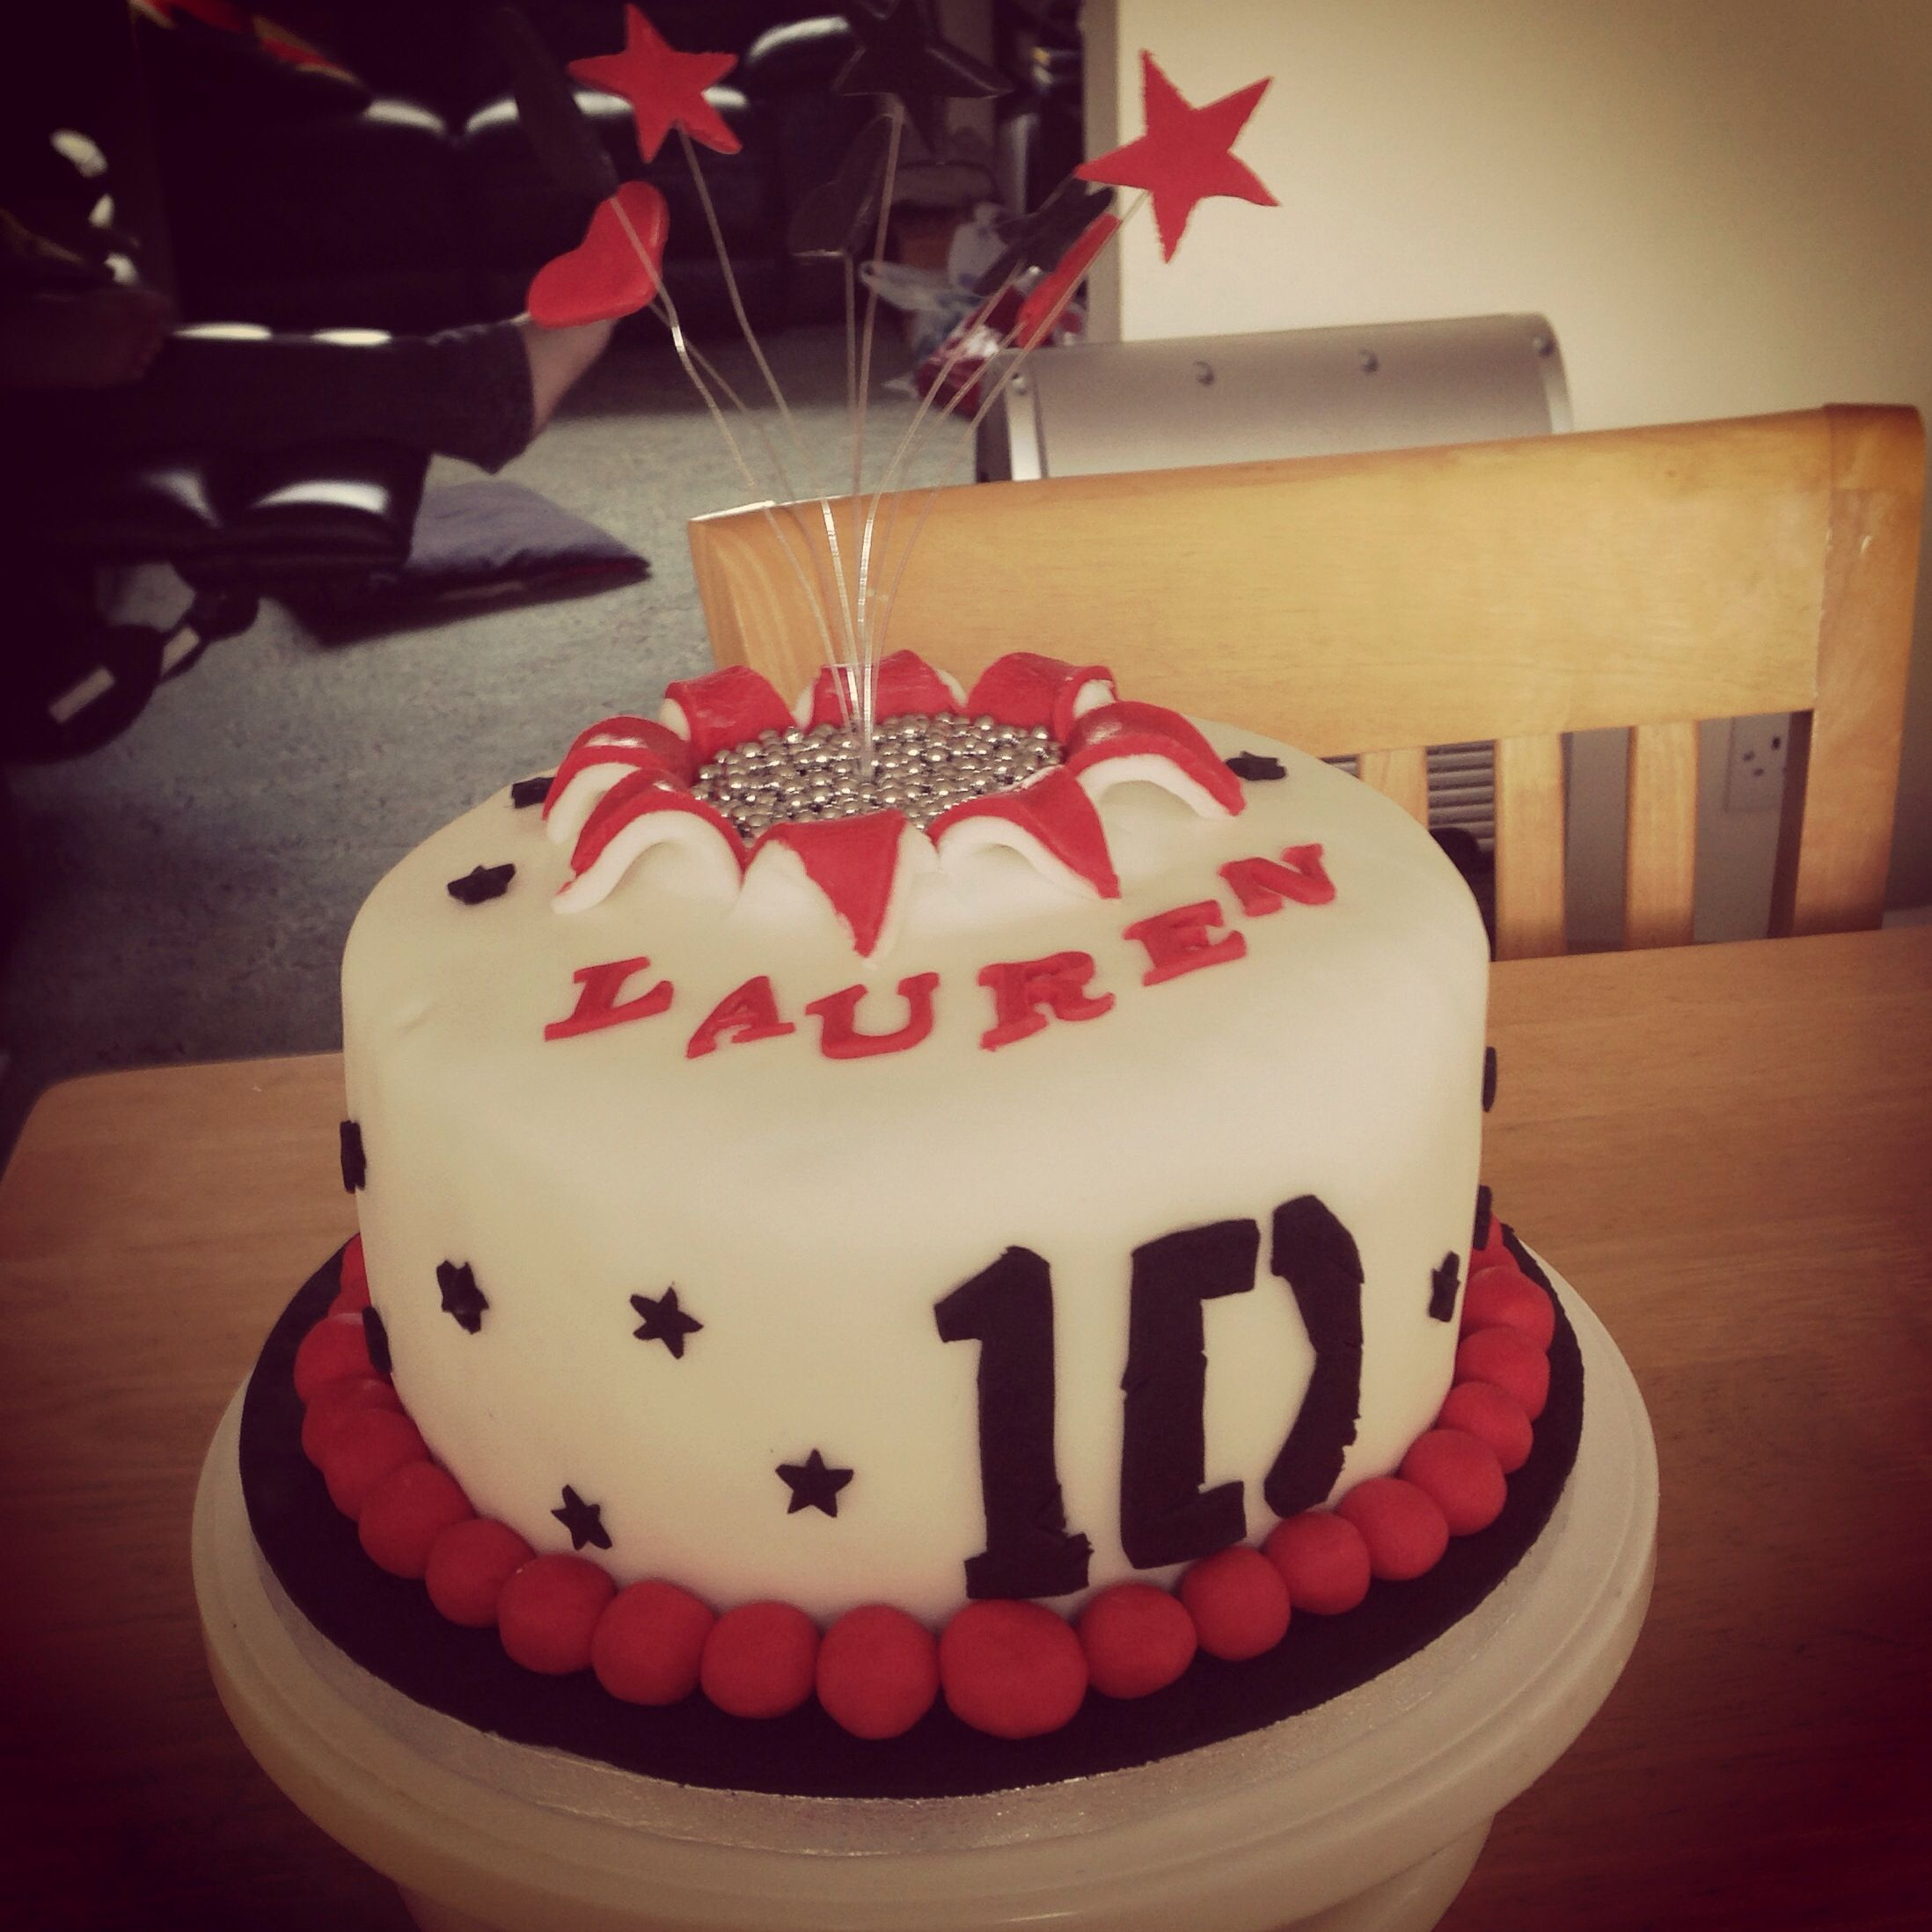 One Direction hidden surprise explosion cake Baked with Oreo